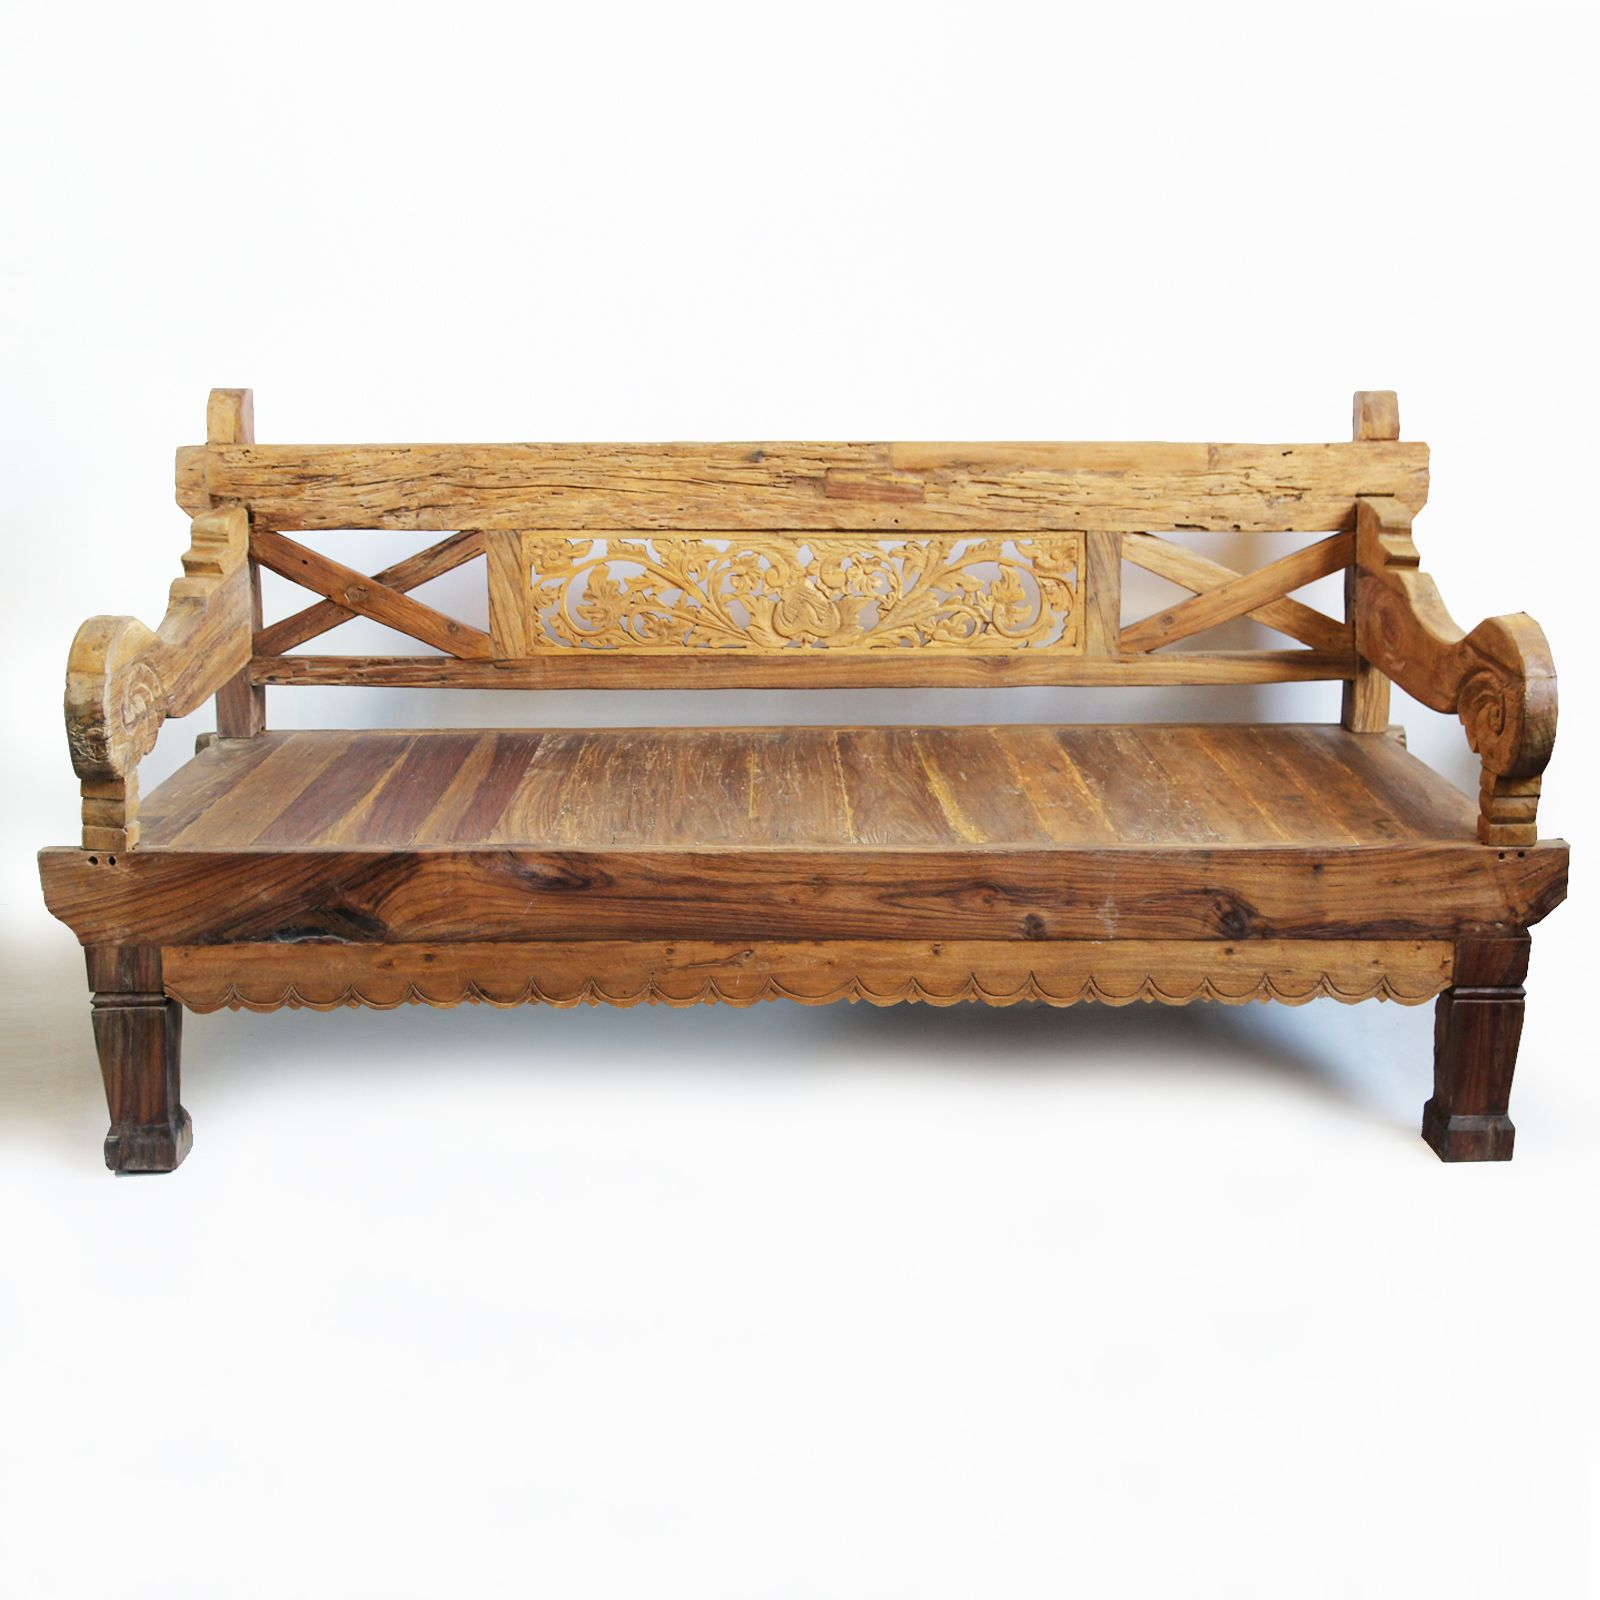 Rustic style teak wood daybed Custom cushions available upon